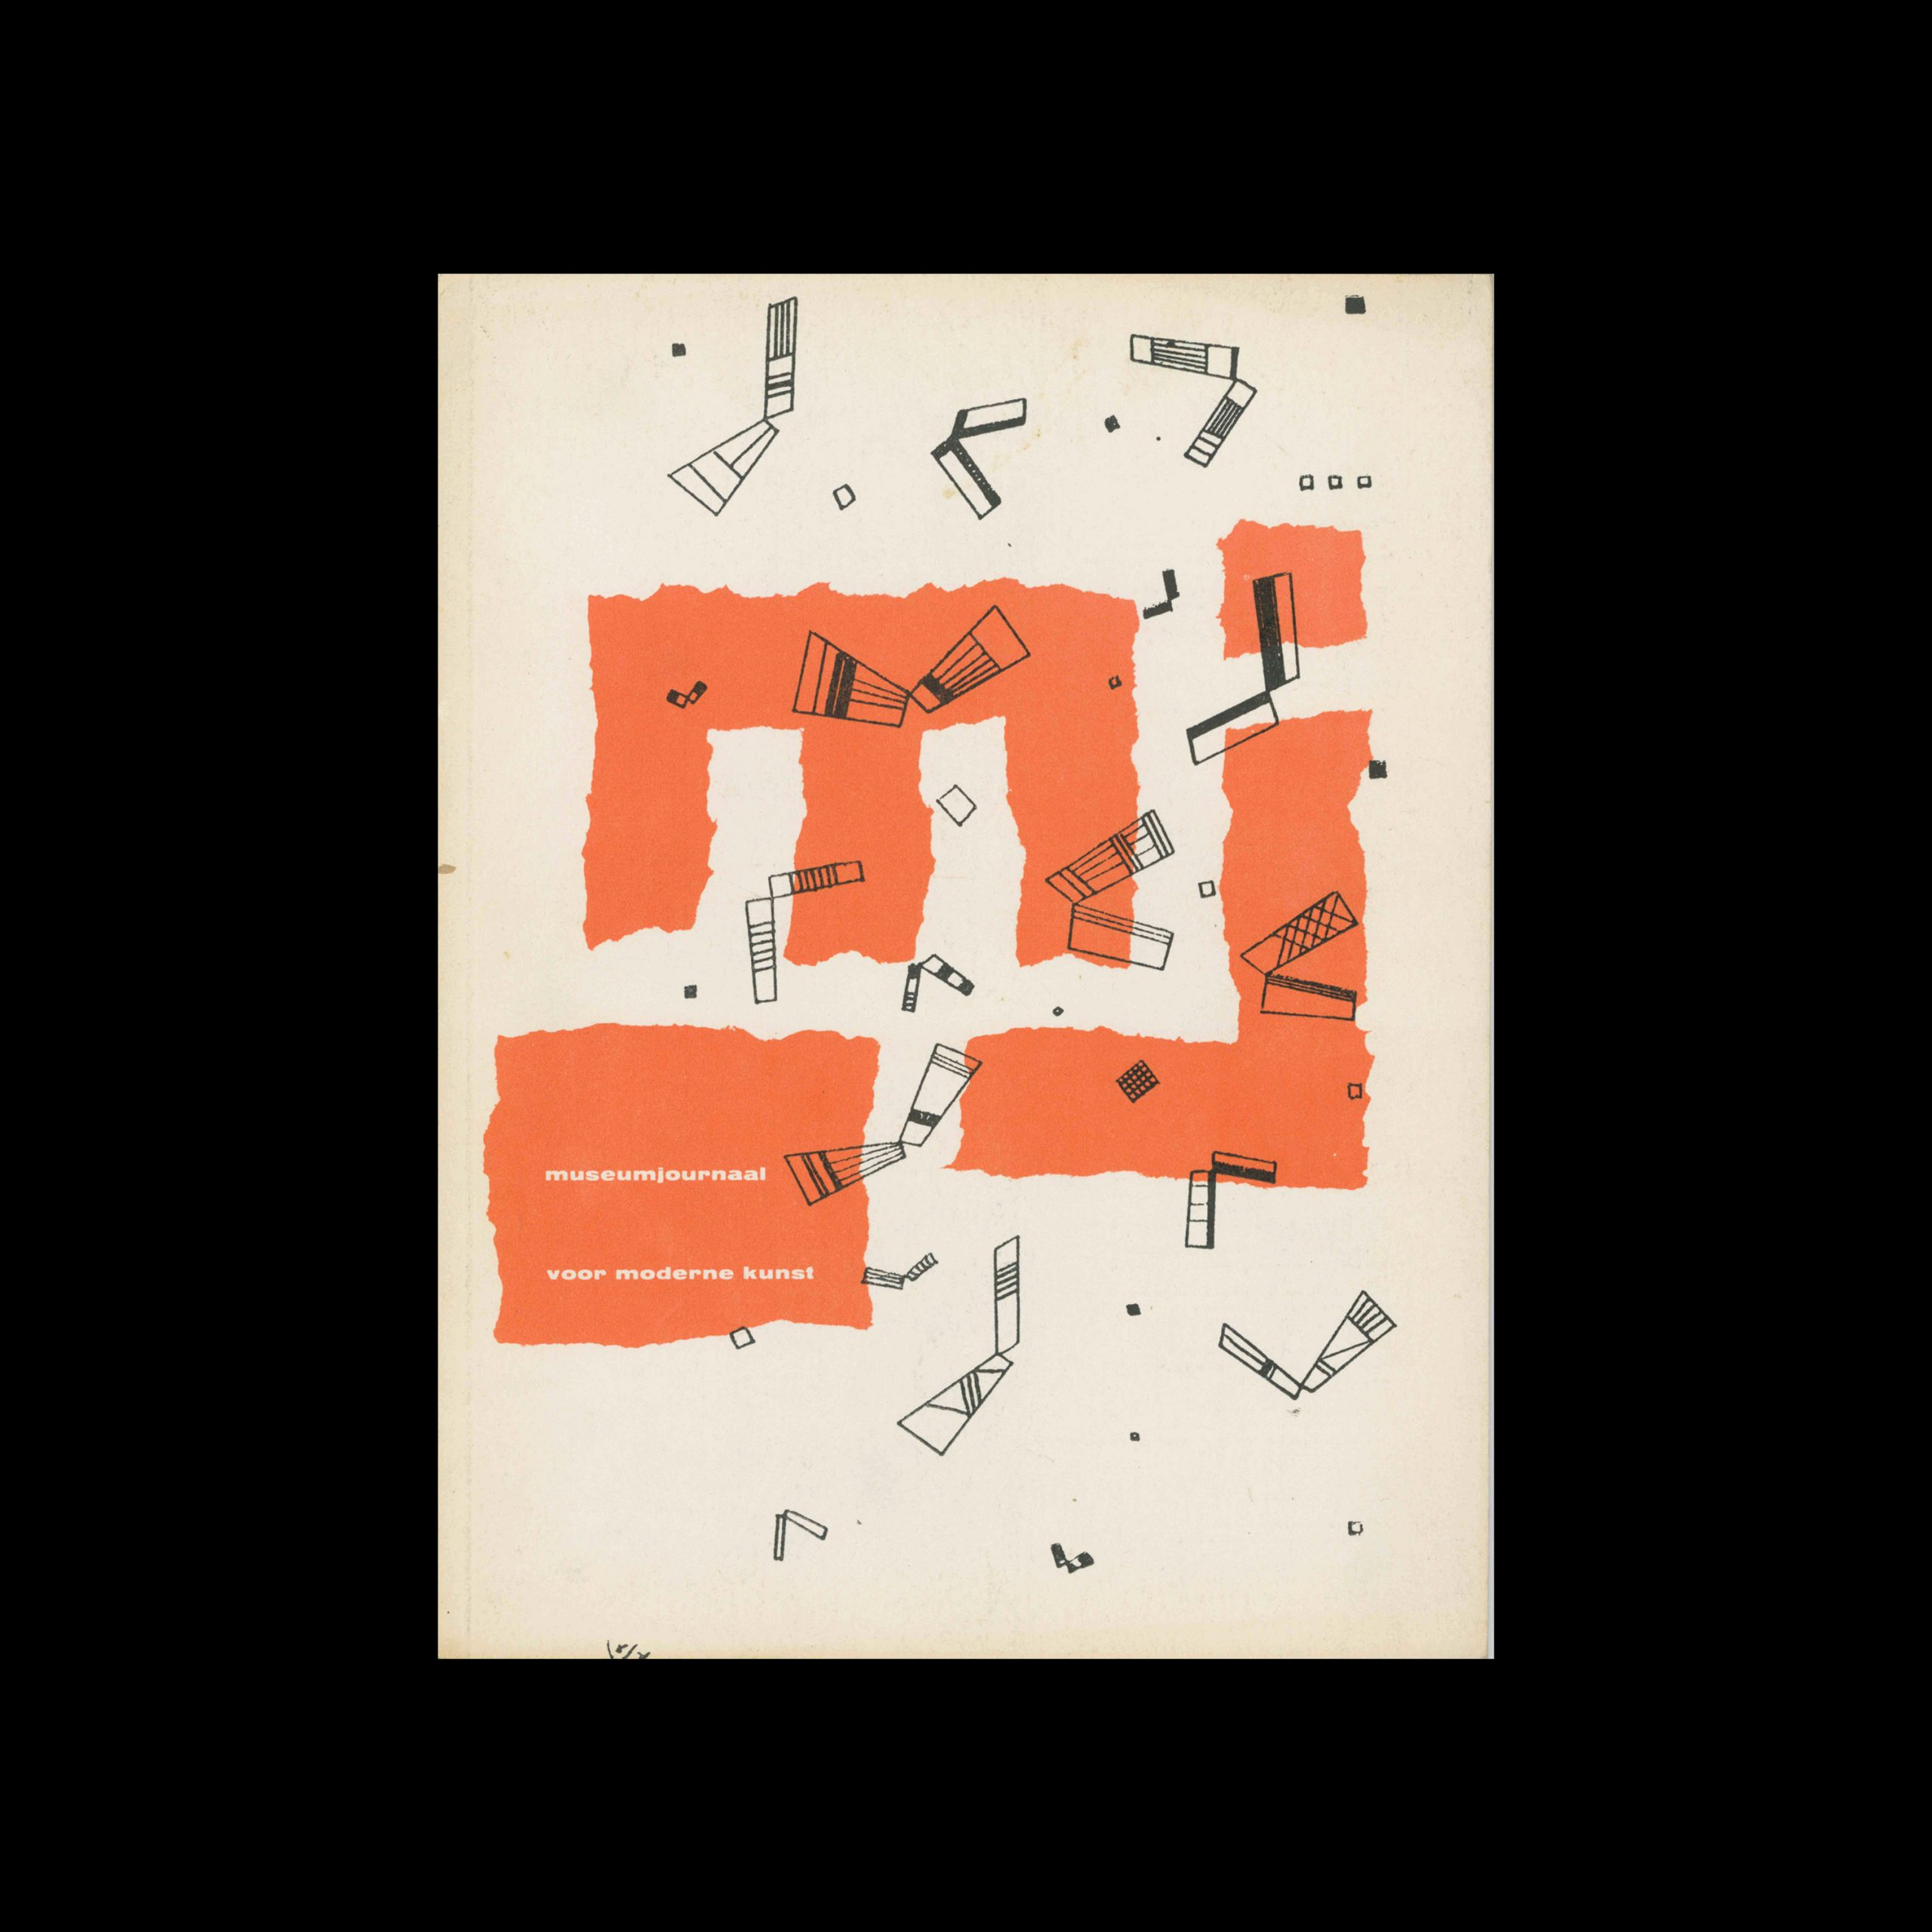 Museumjournaal, Serie 9 no1, 1963. Cover drawing by Wassily Kandinsky.